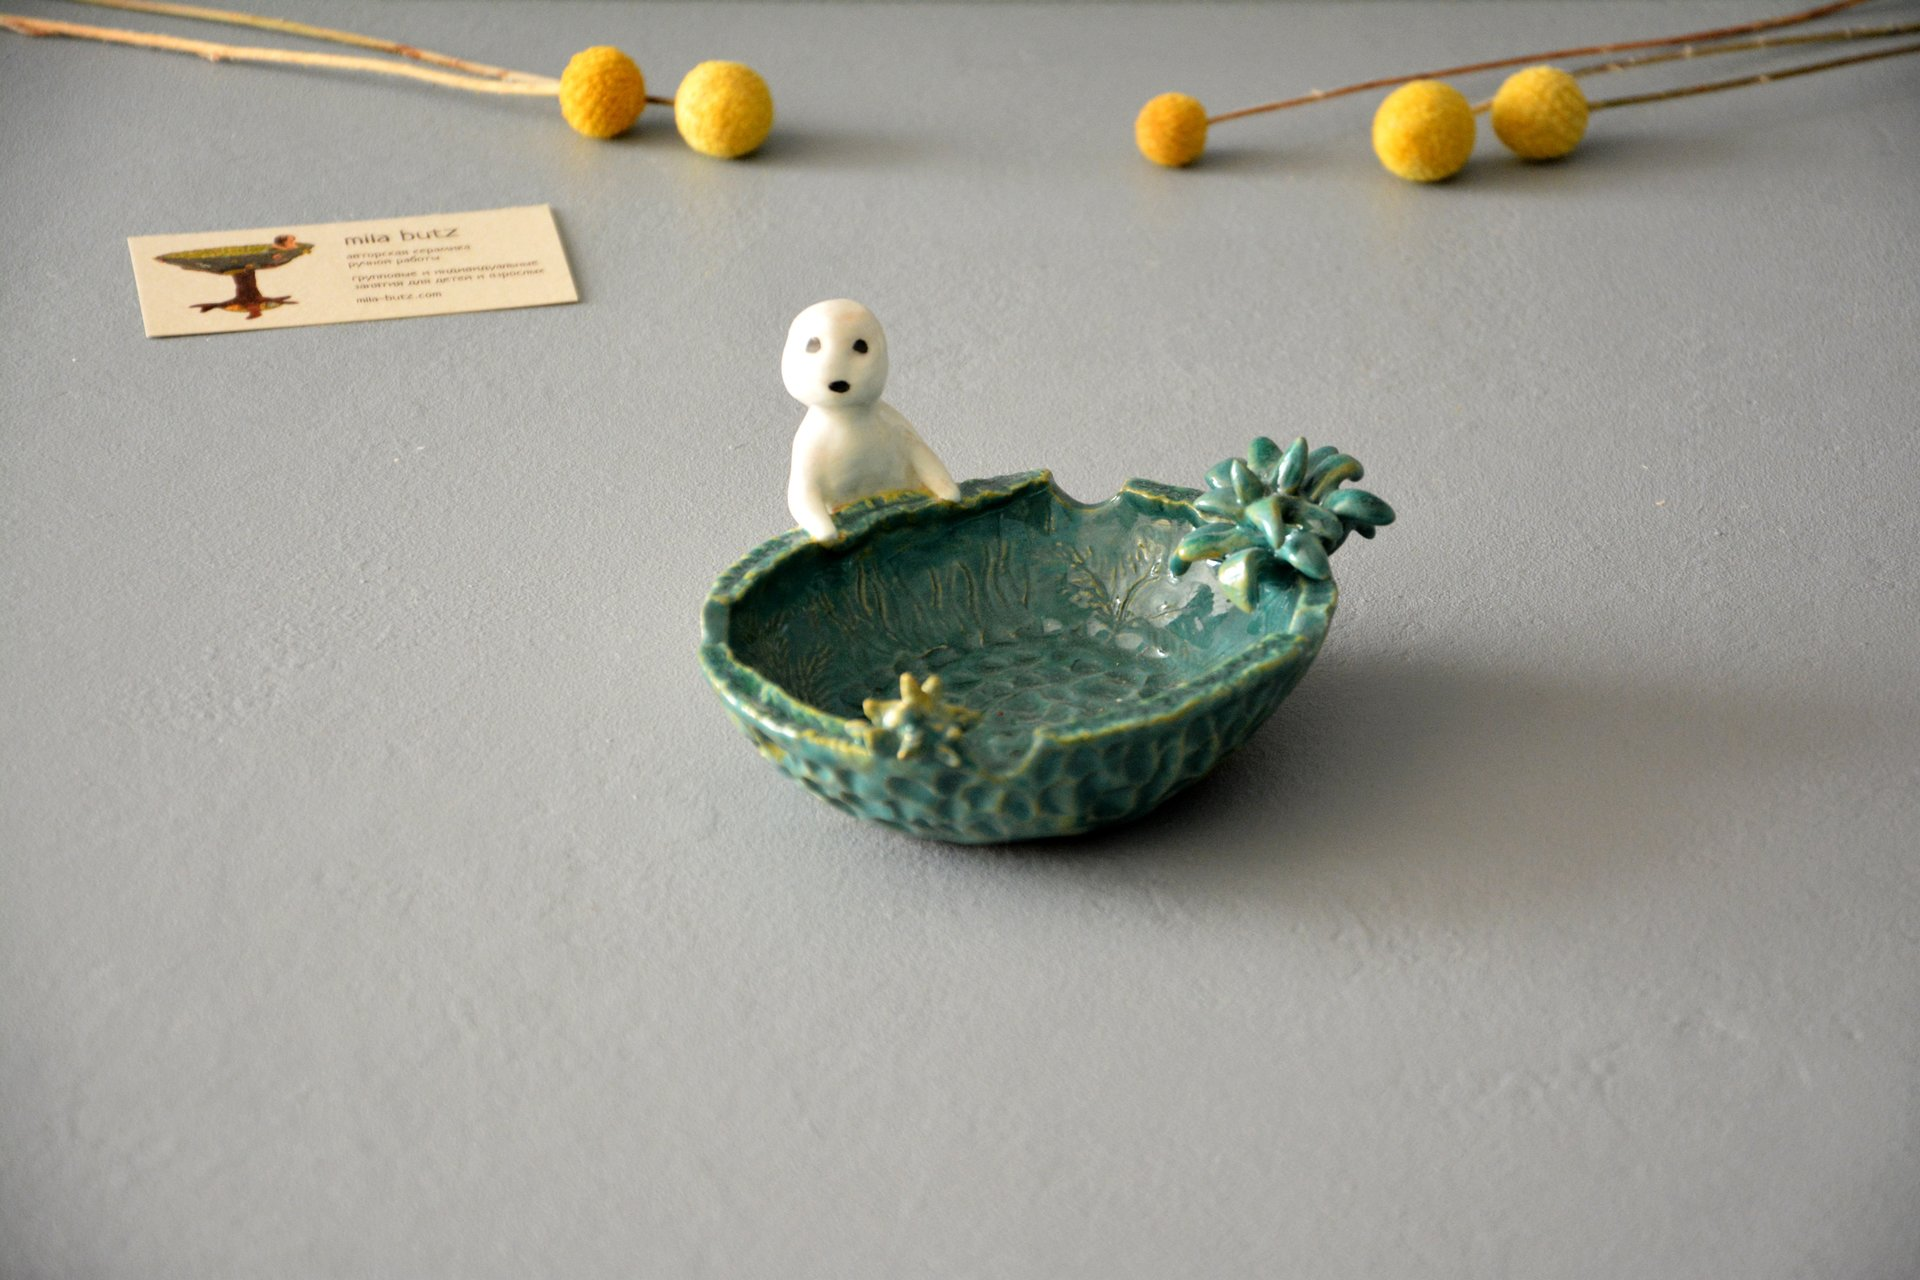 Ashtray with a figurine of Kodama the tree spirit, diameter - 13, height  - 12 см, photo 1 of 5.